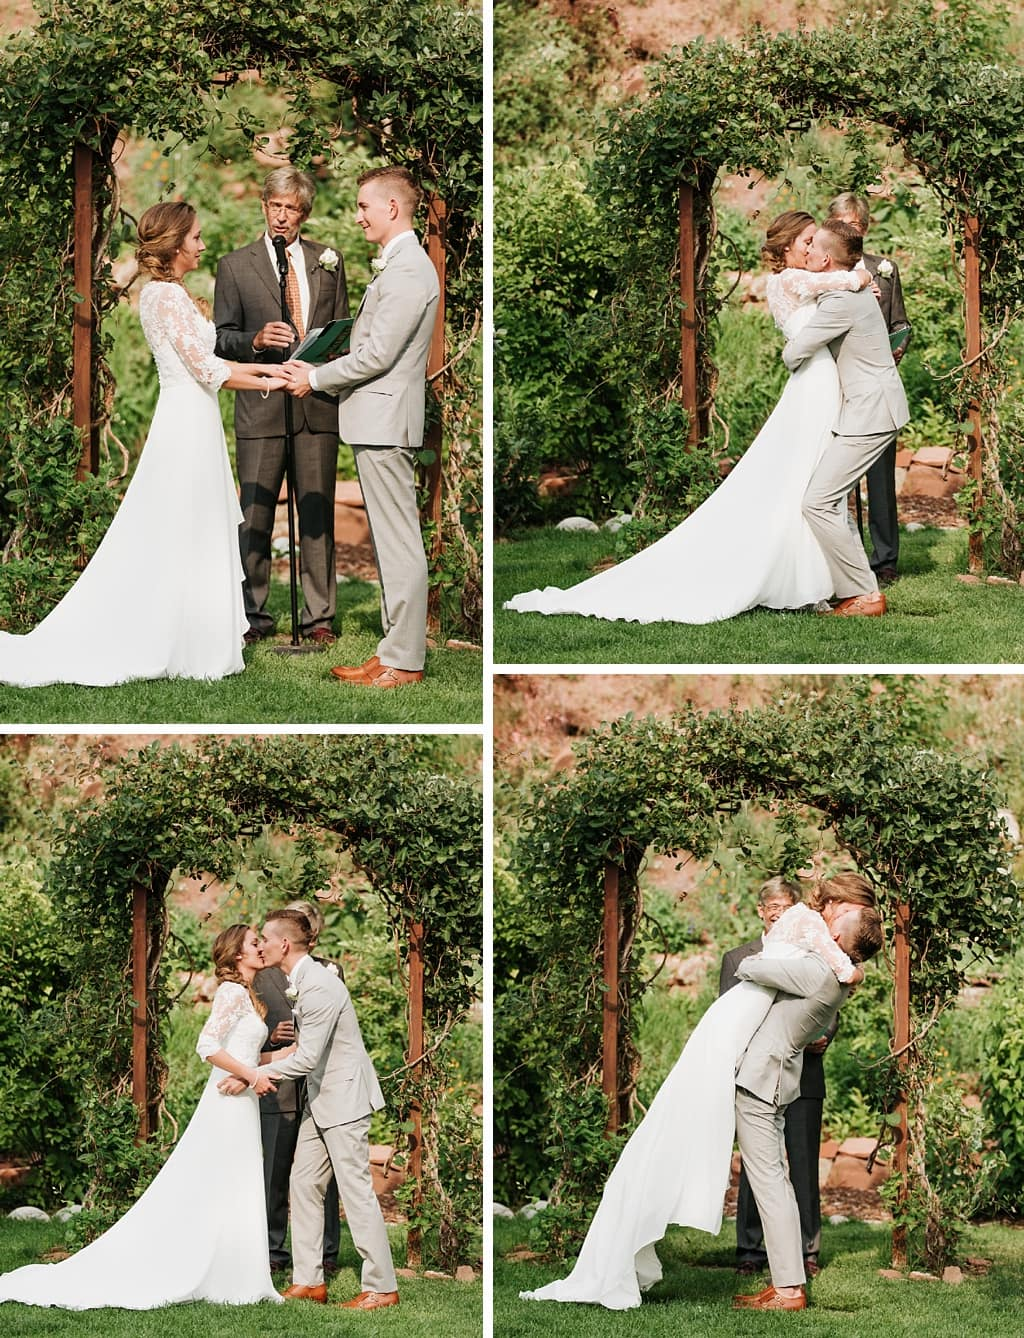 Stone Mountain Lodge Wedding ceremony in Lyons Colorado first kiss groom lifting bride